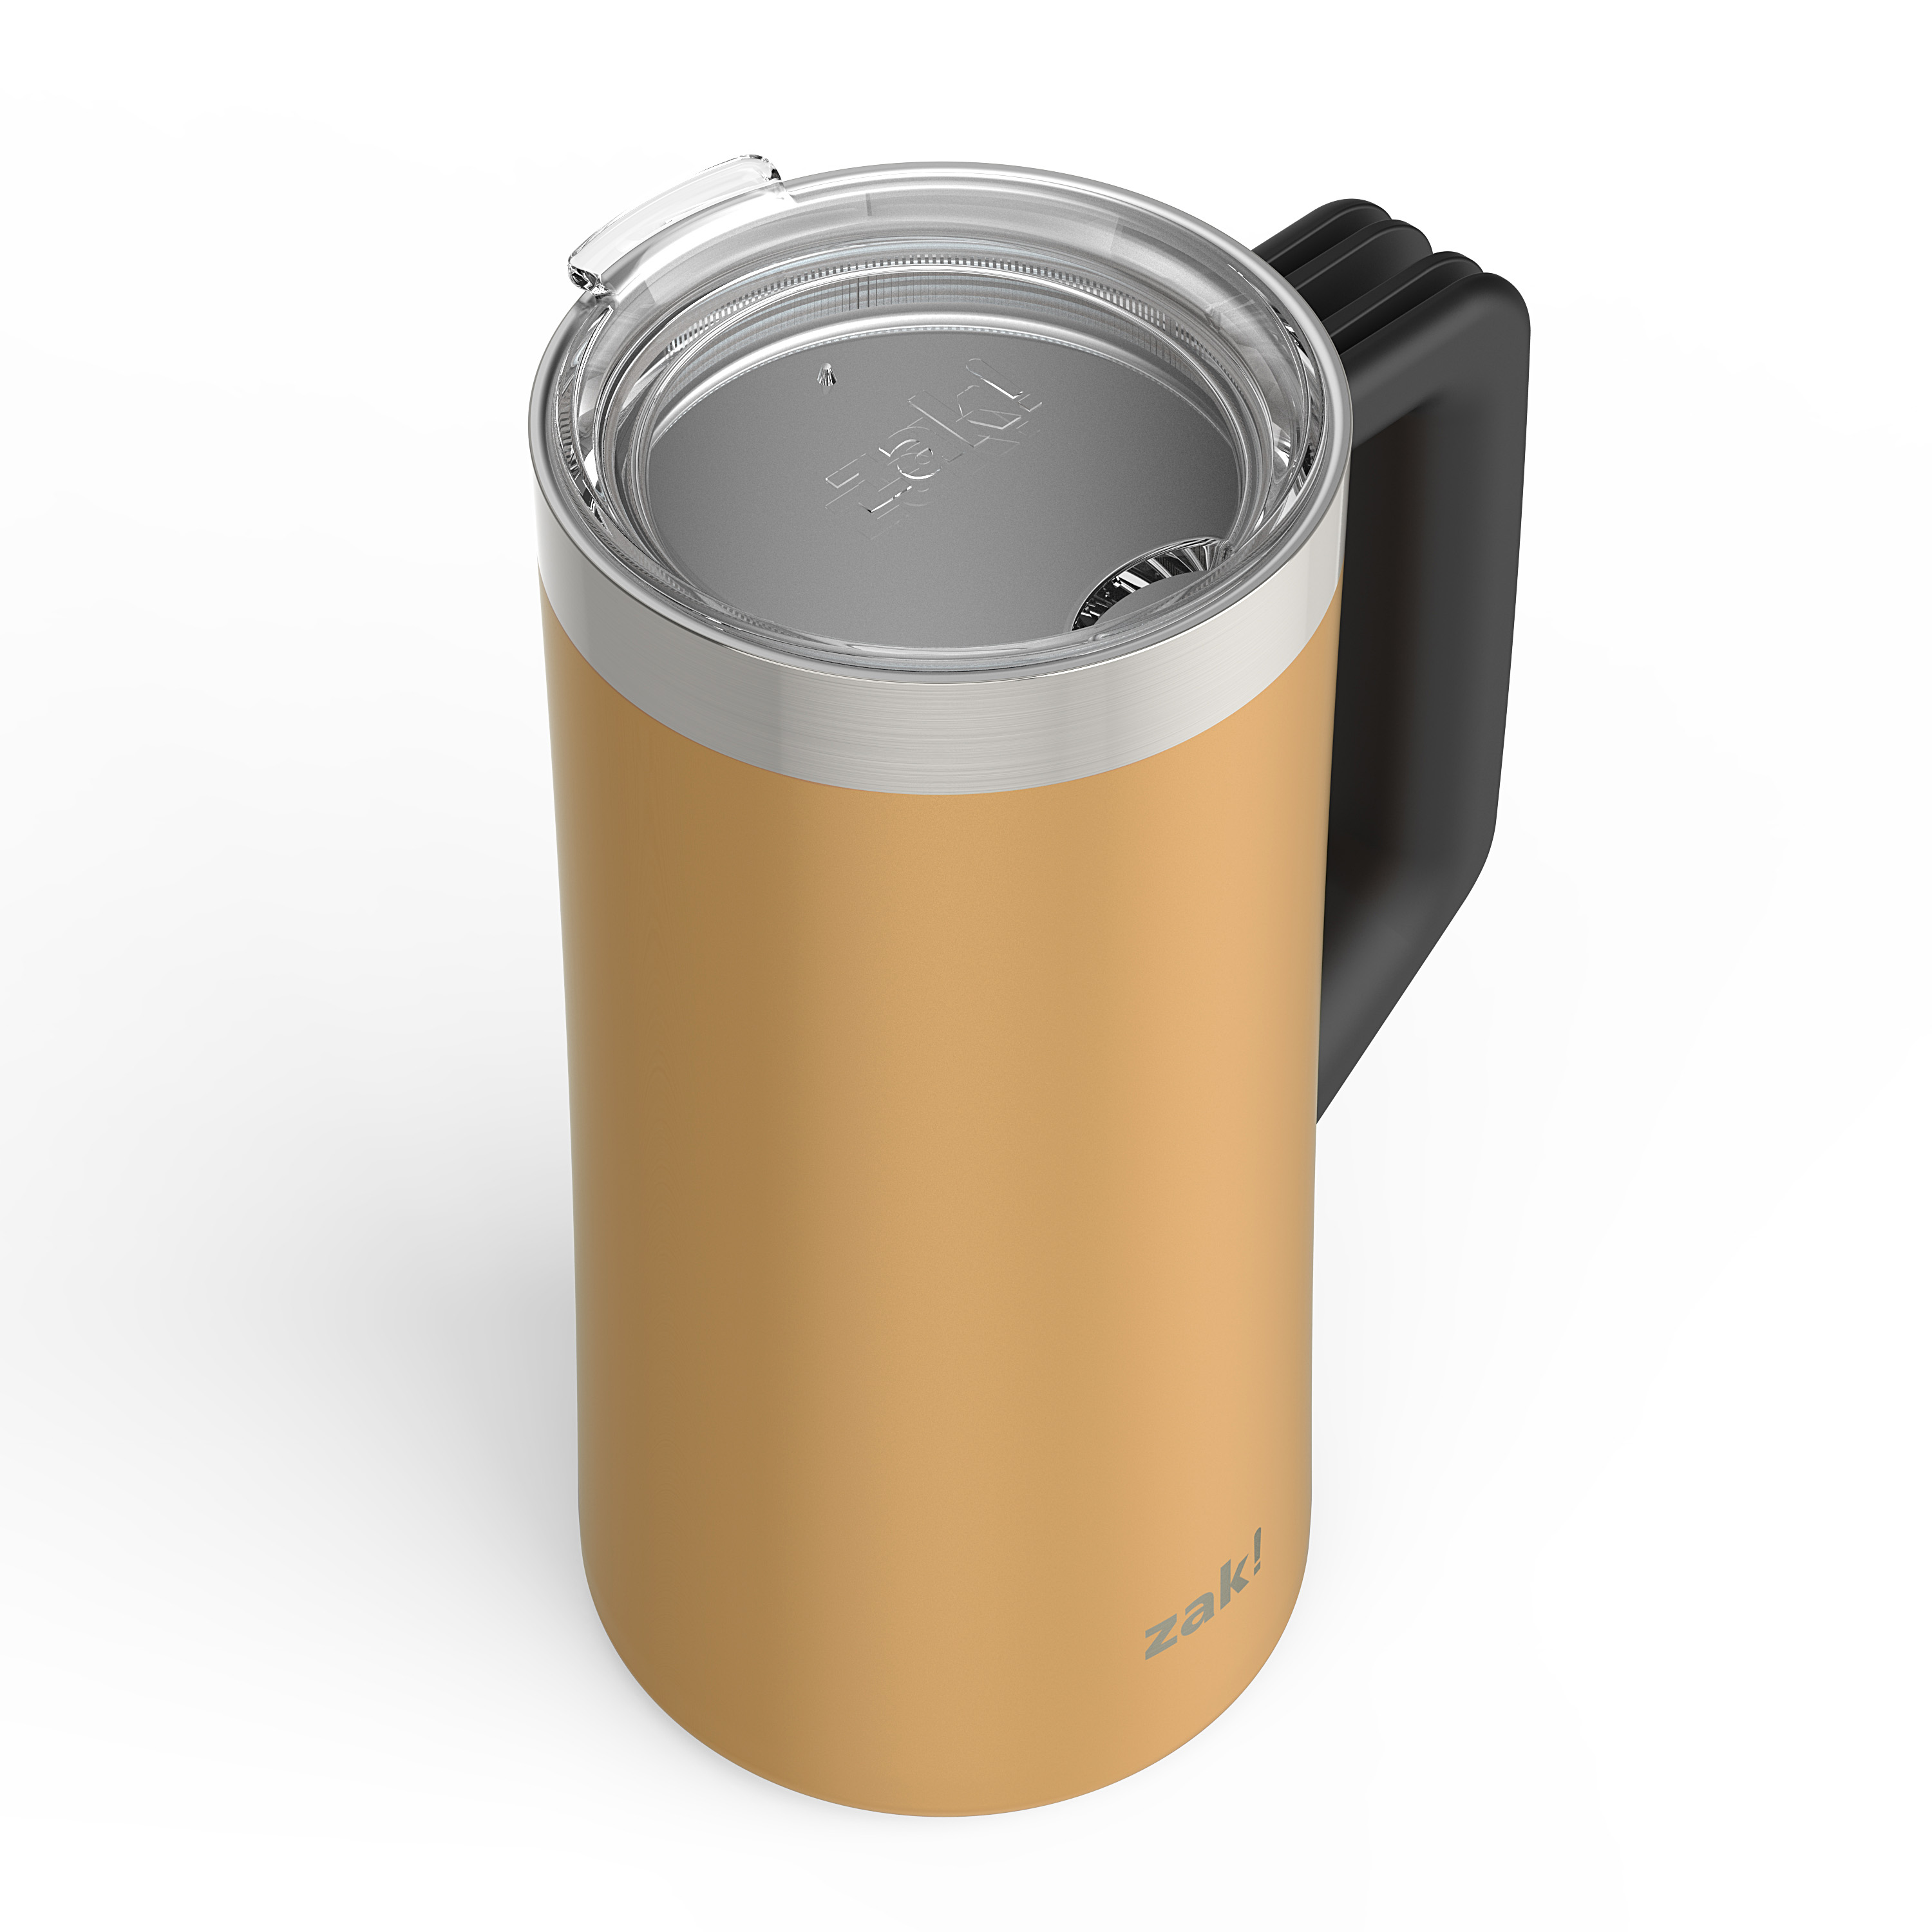 Creston 25 ounce Stainless Steel Vacuum Insulated Beer Stein, Copper slideshow image 2